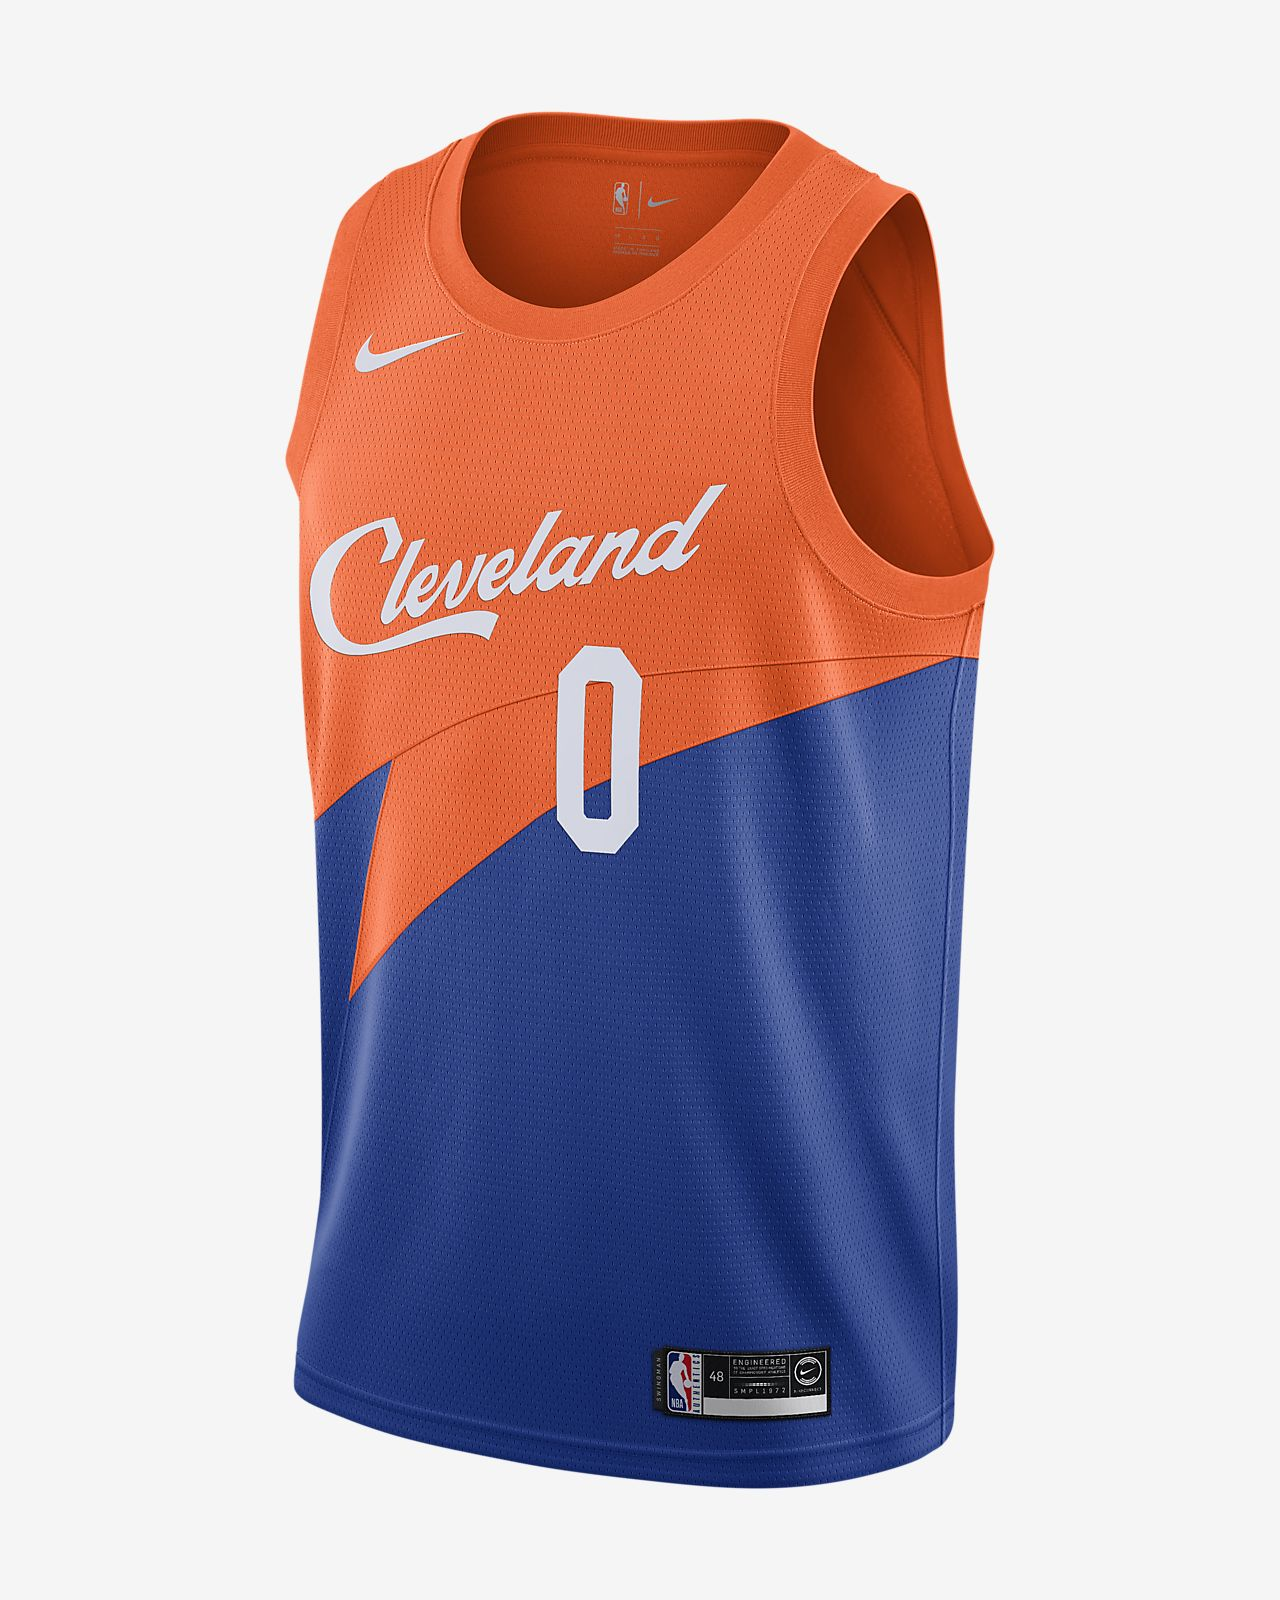 Maglia Nike NBA Connected Kevin Love City Edition Swingman (Cleveland Cavaliers) - Uomo